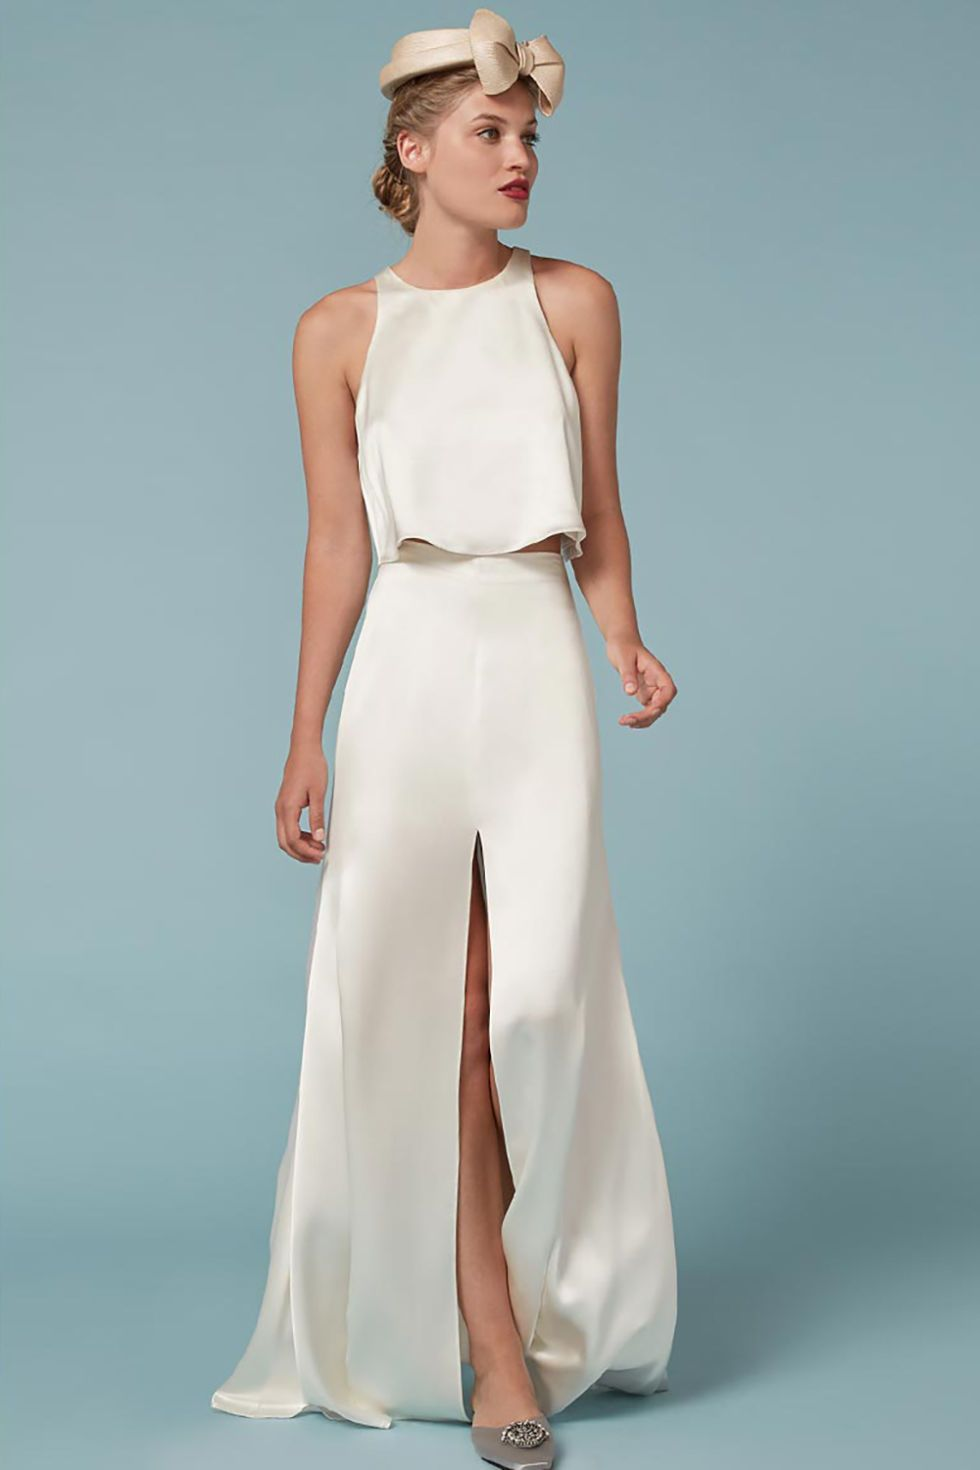 Emejing Dresses For Second Weddings Contemporary - Styles & Ideas ...